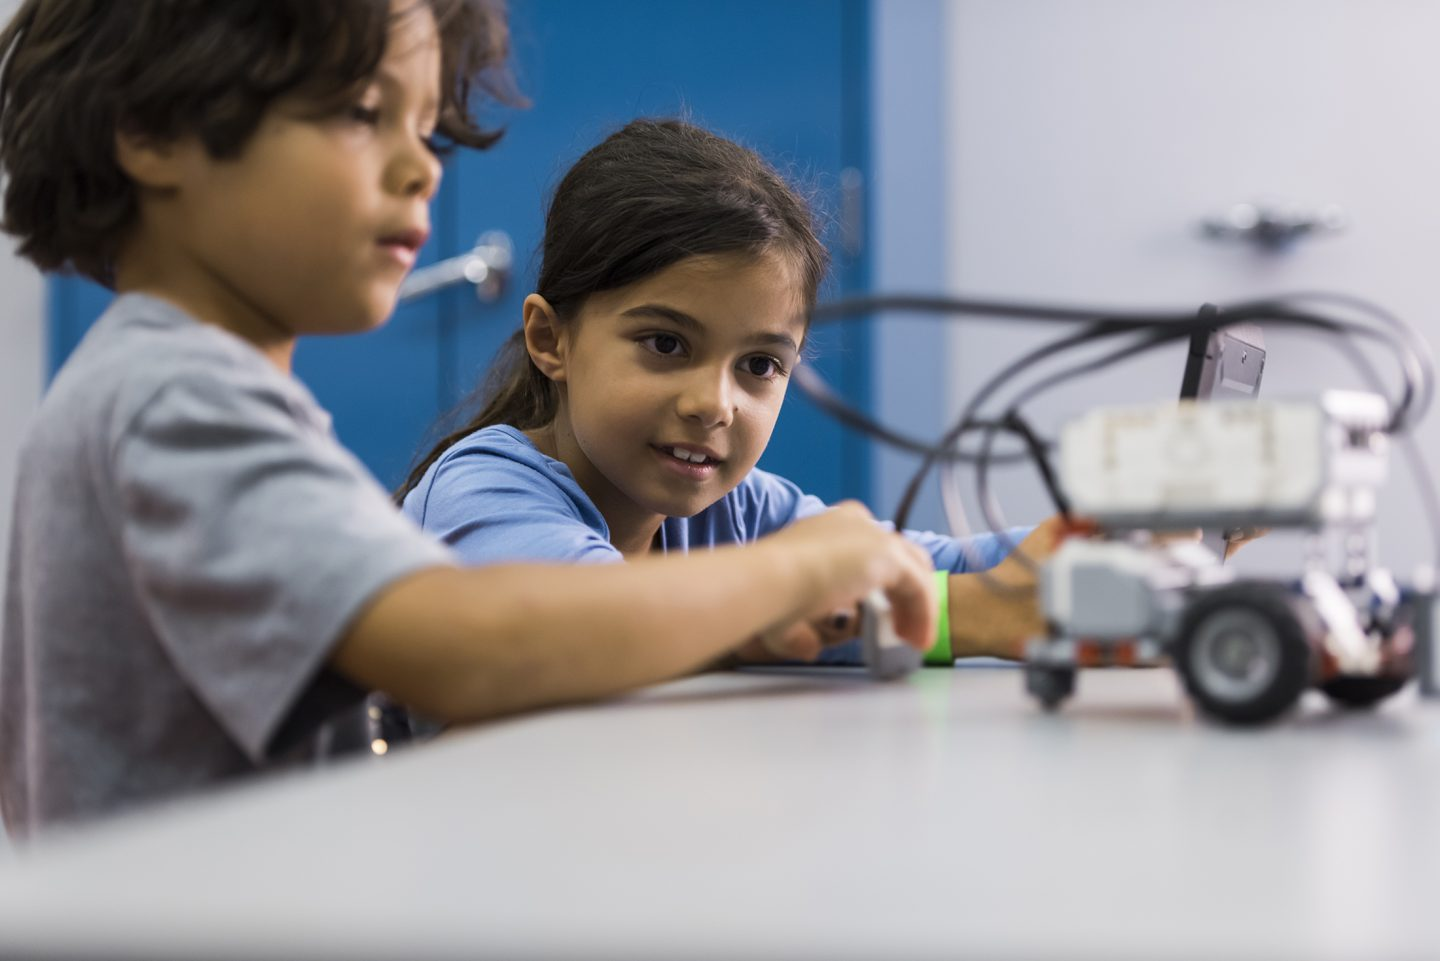 Two children working on a robot car